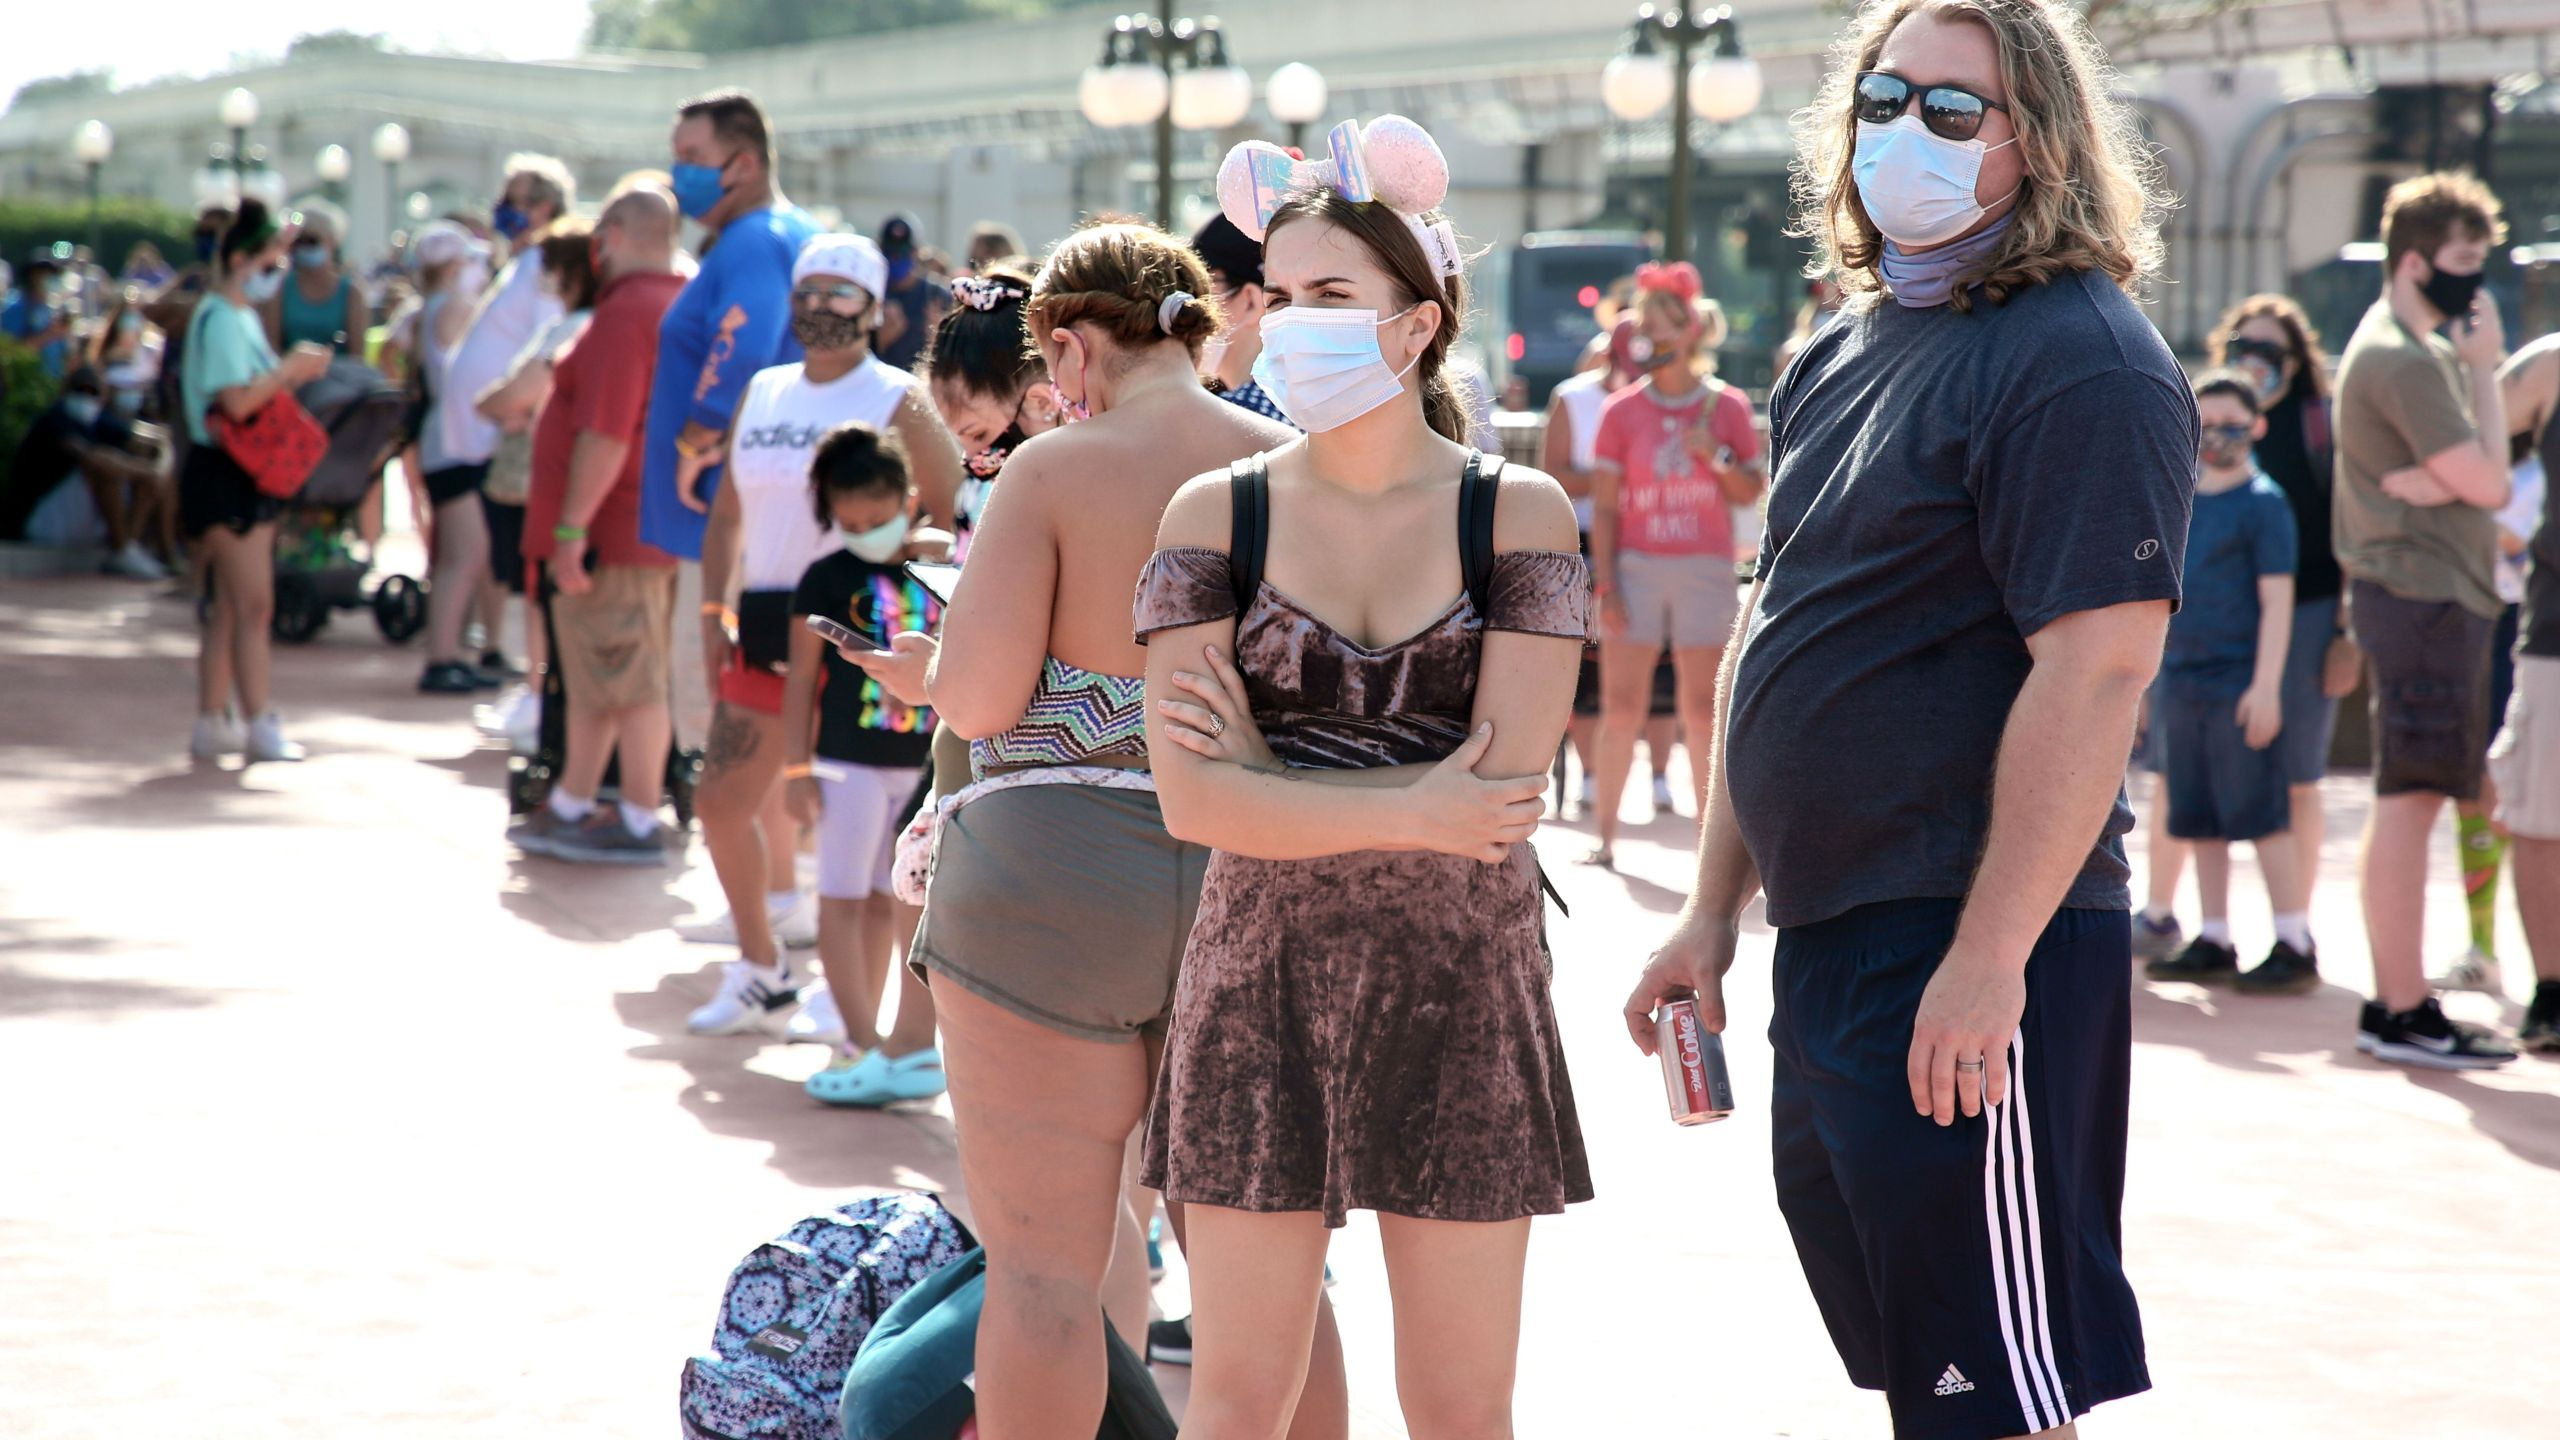 Guests wearing protective masks wait outside the Magic Kingdom theme park at Walt Disney World on the first day of reopening, in Orlando, Fla., on July 11, 2020. (Gregg Newton/AFP via Getty Images)